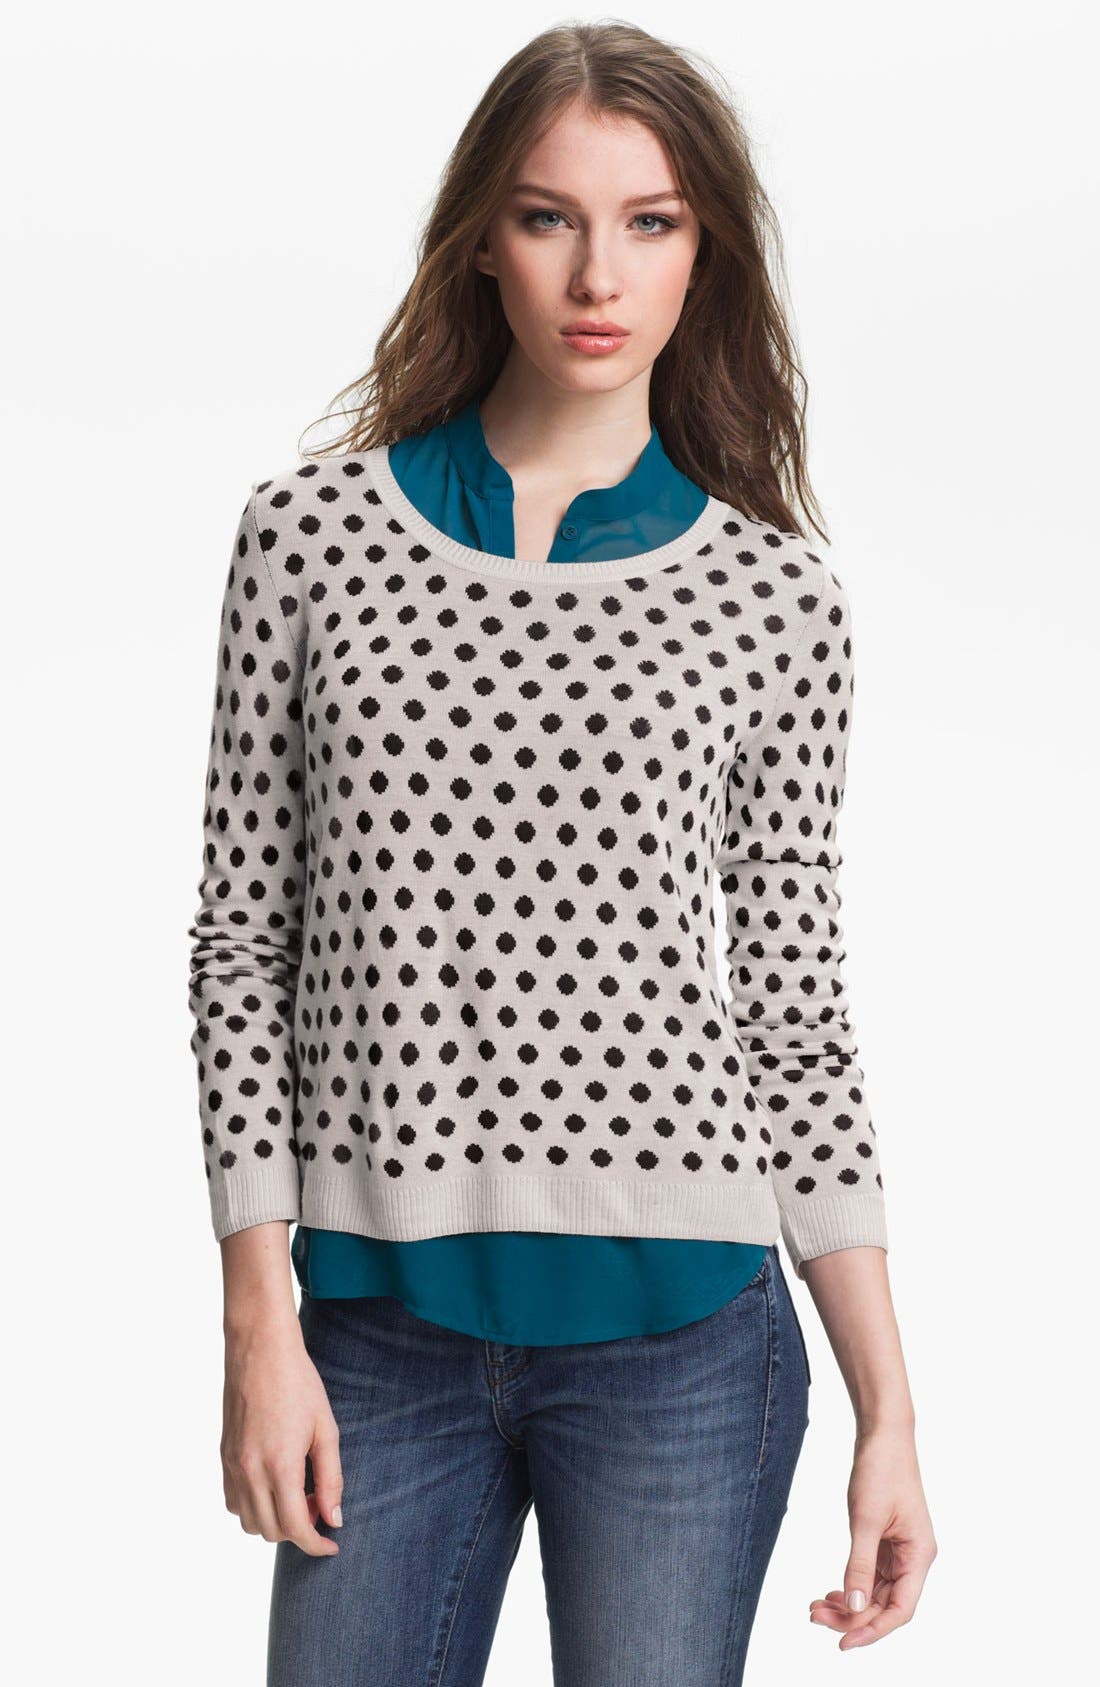 Alternate Image 1 Selected - Kensie Reversible Dot Sweater